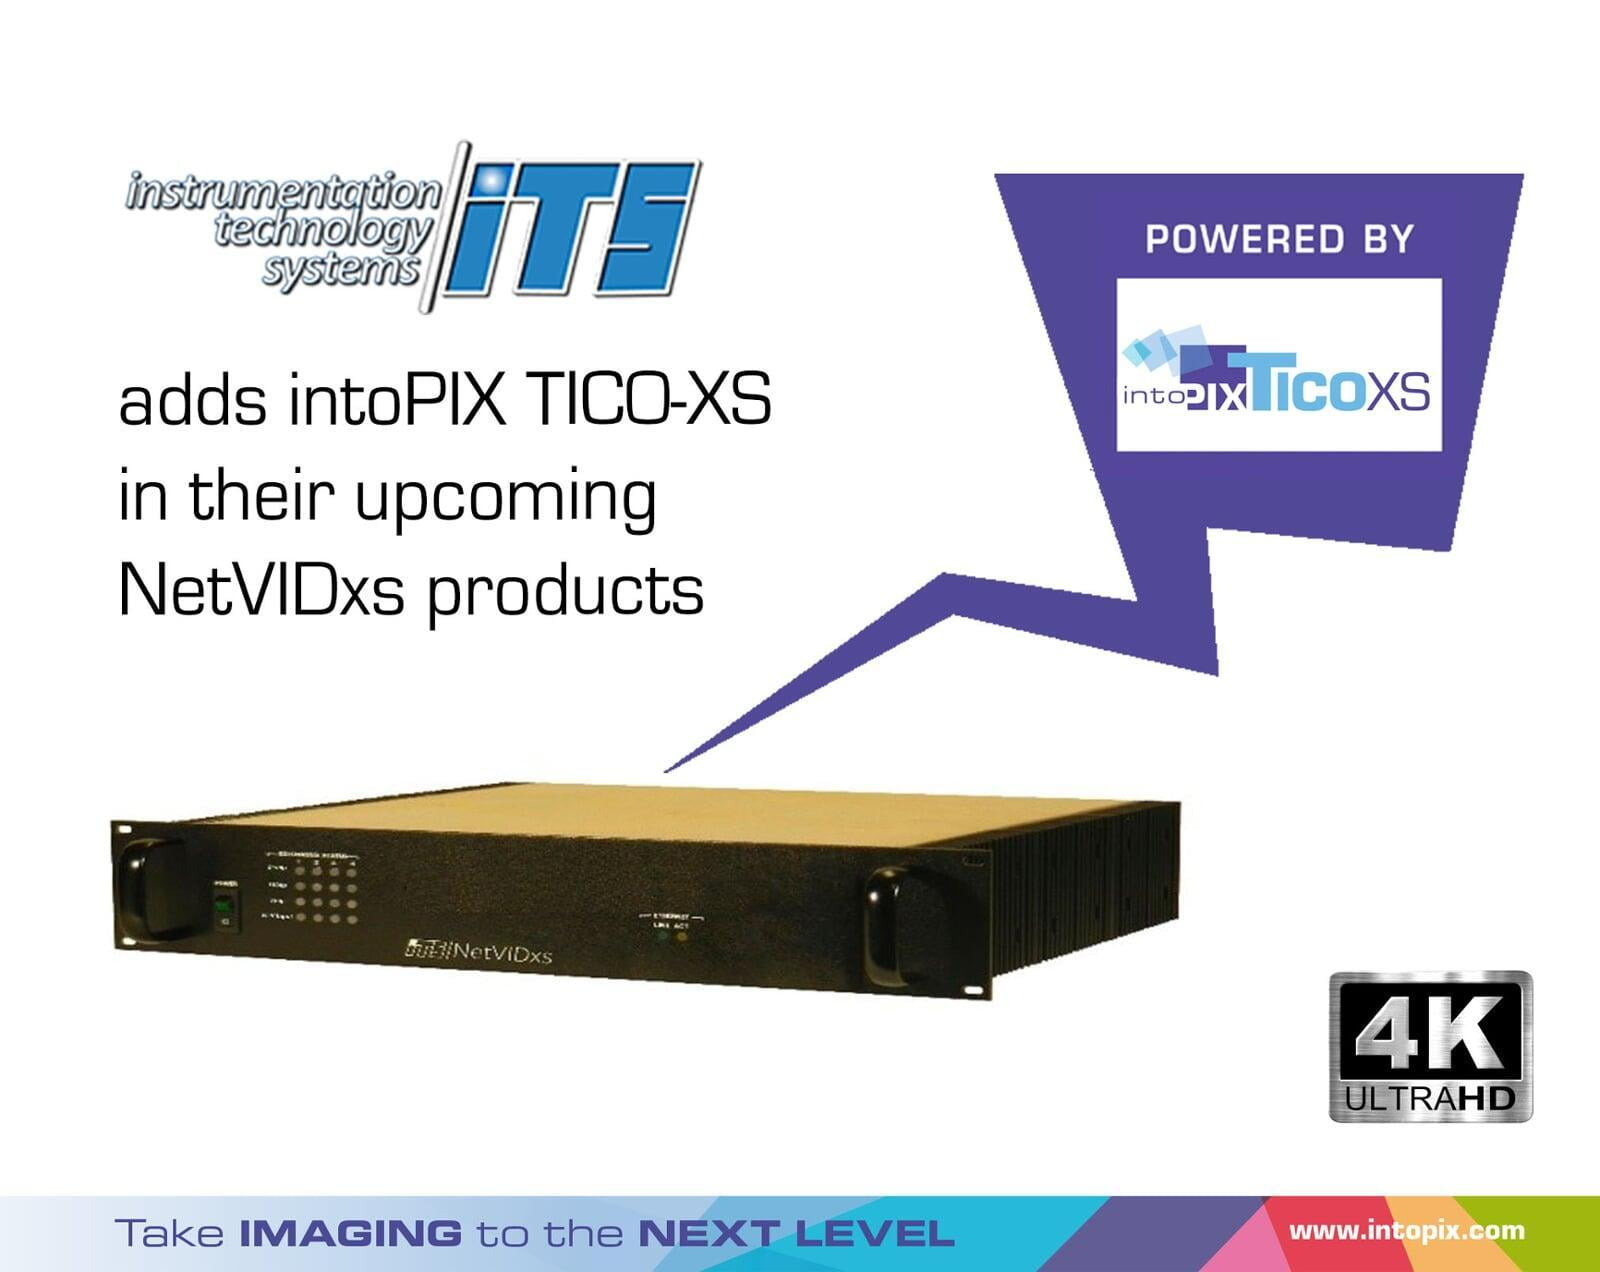 Instrumentation Technology Systems adds intoPIX TICO-XS to their upcoming NetVIDxs